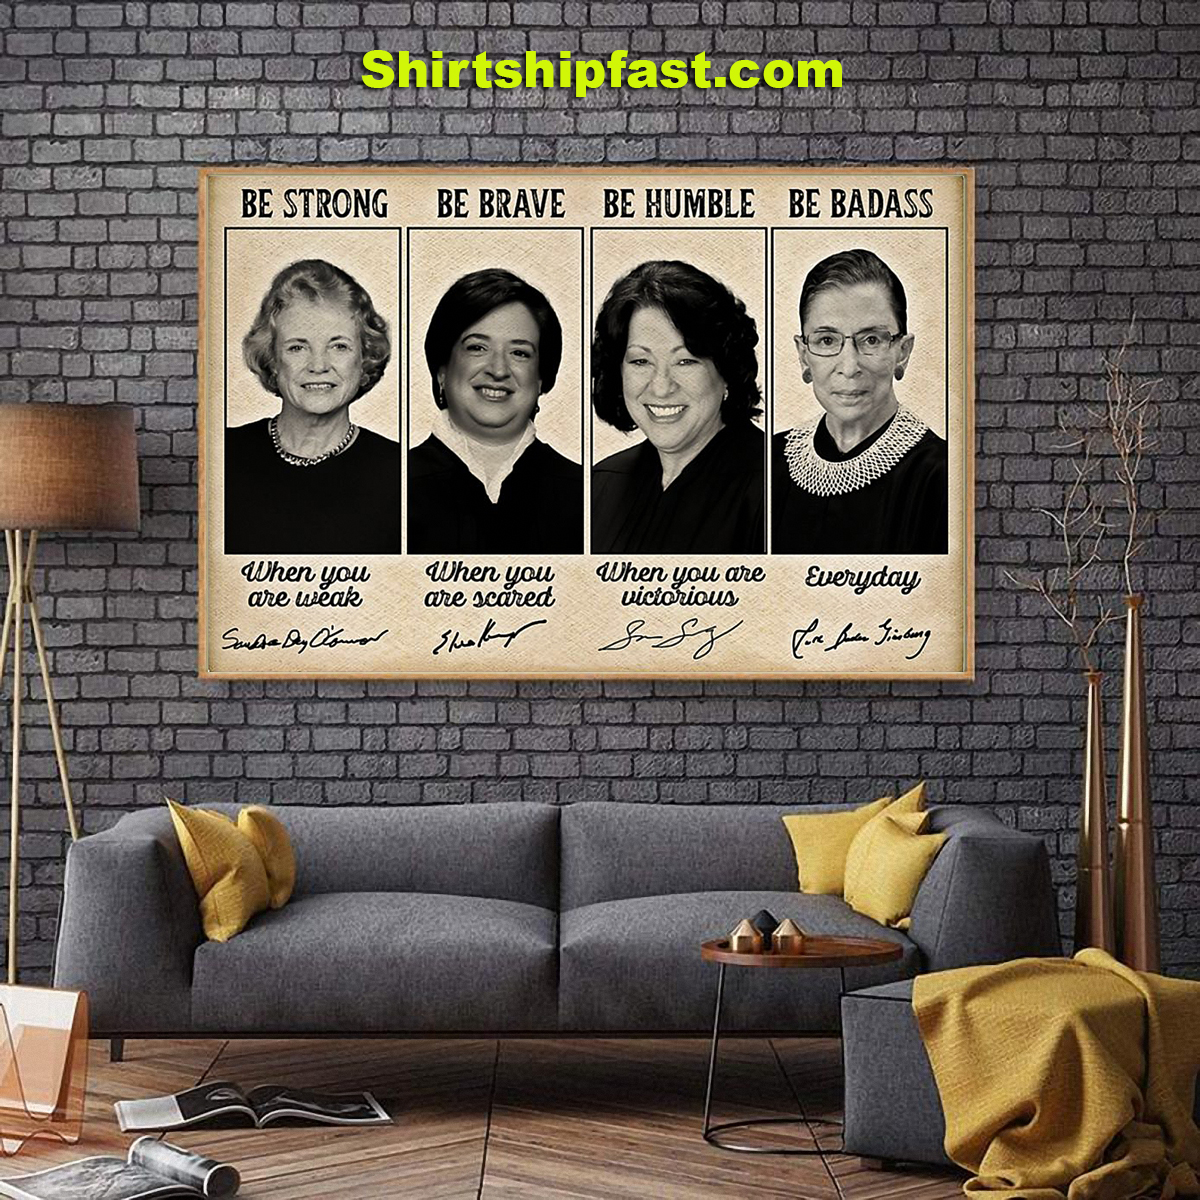 Sandra Day O'connor Elena Kagan be strong be brave be humble be badass signature poster - Picture 2